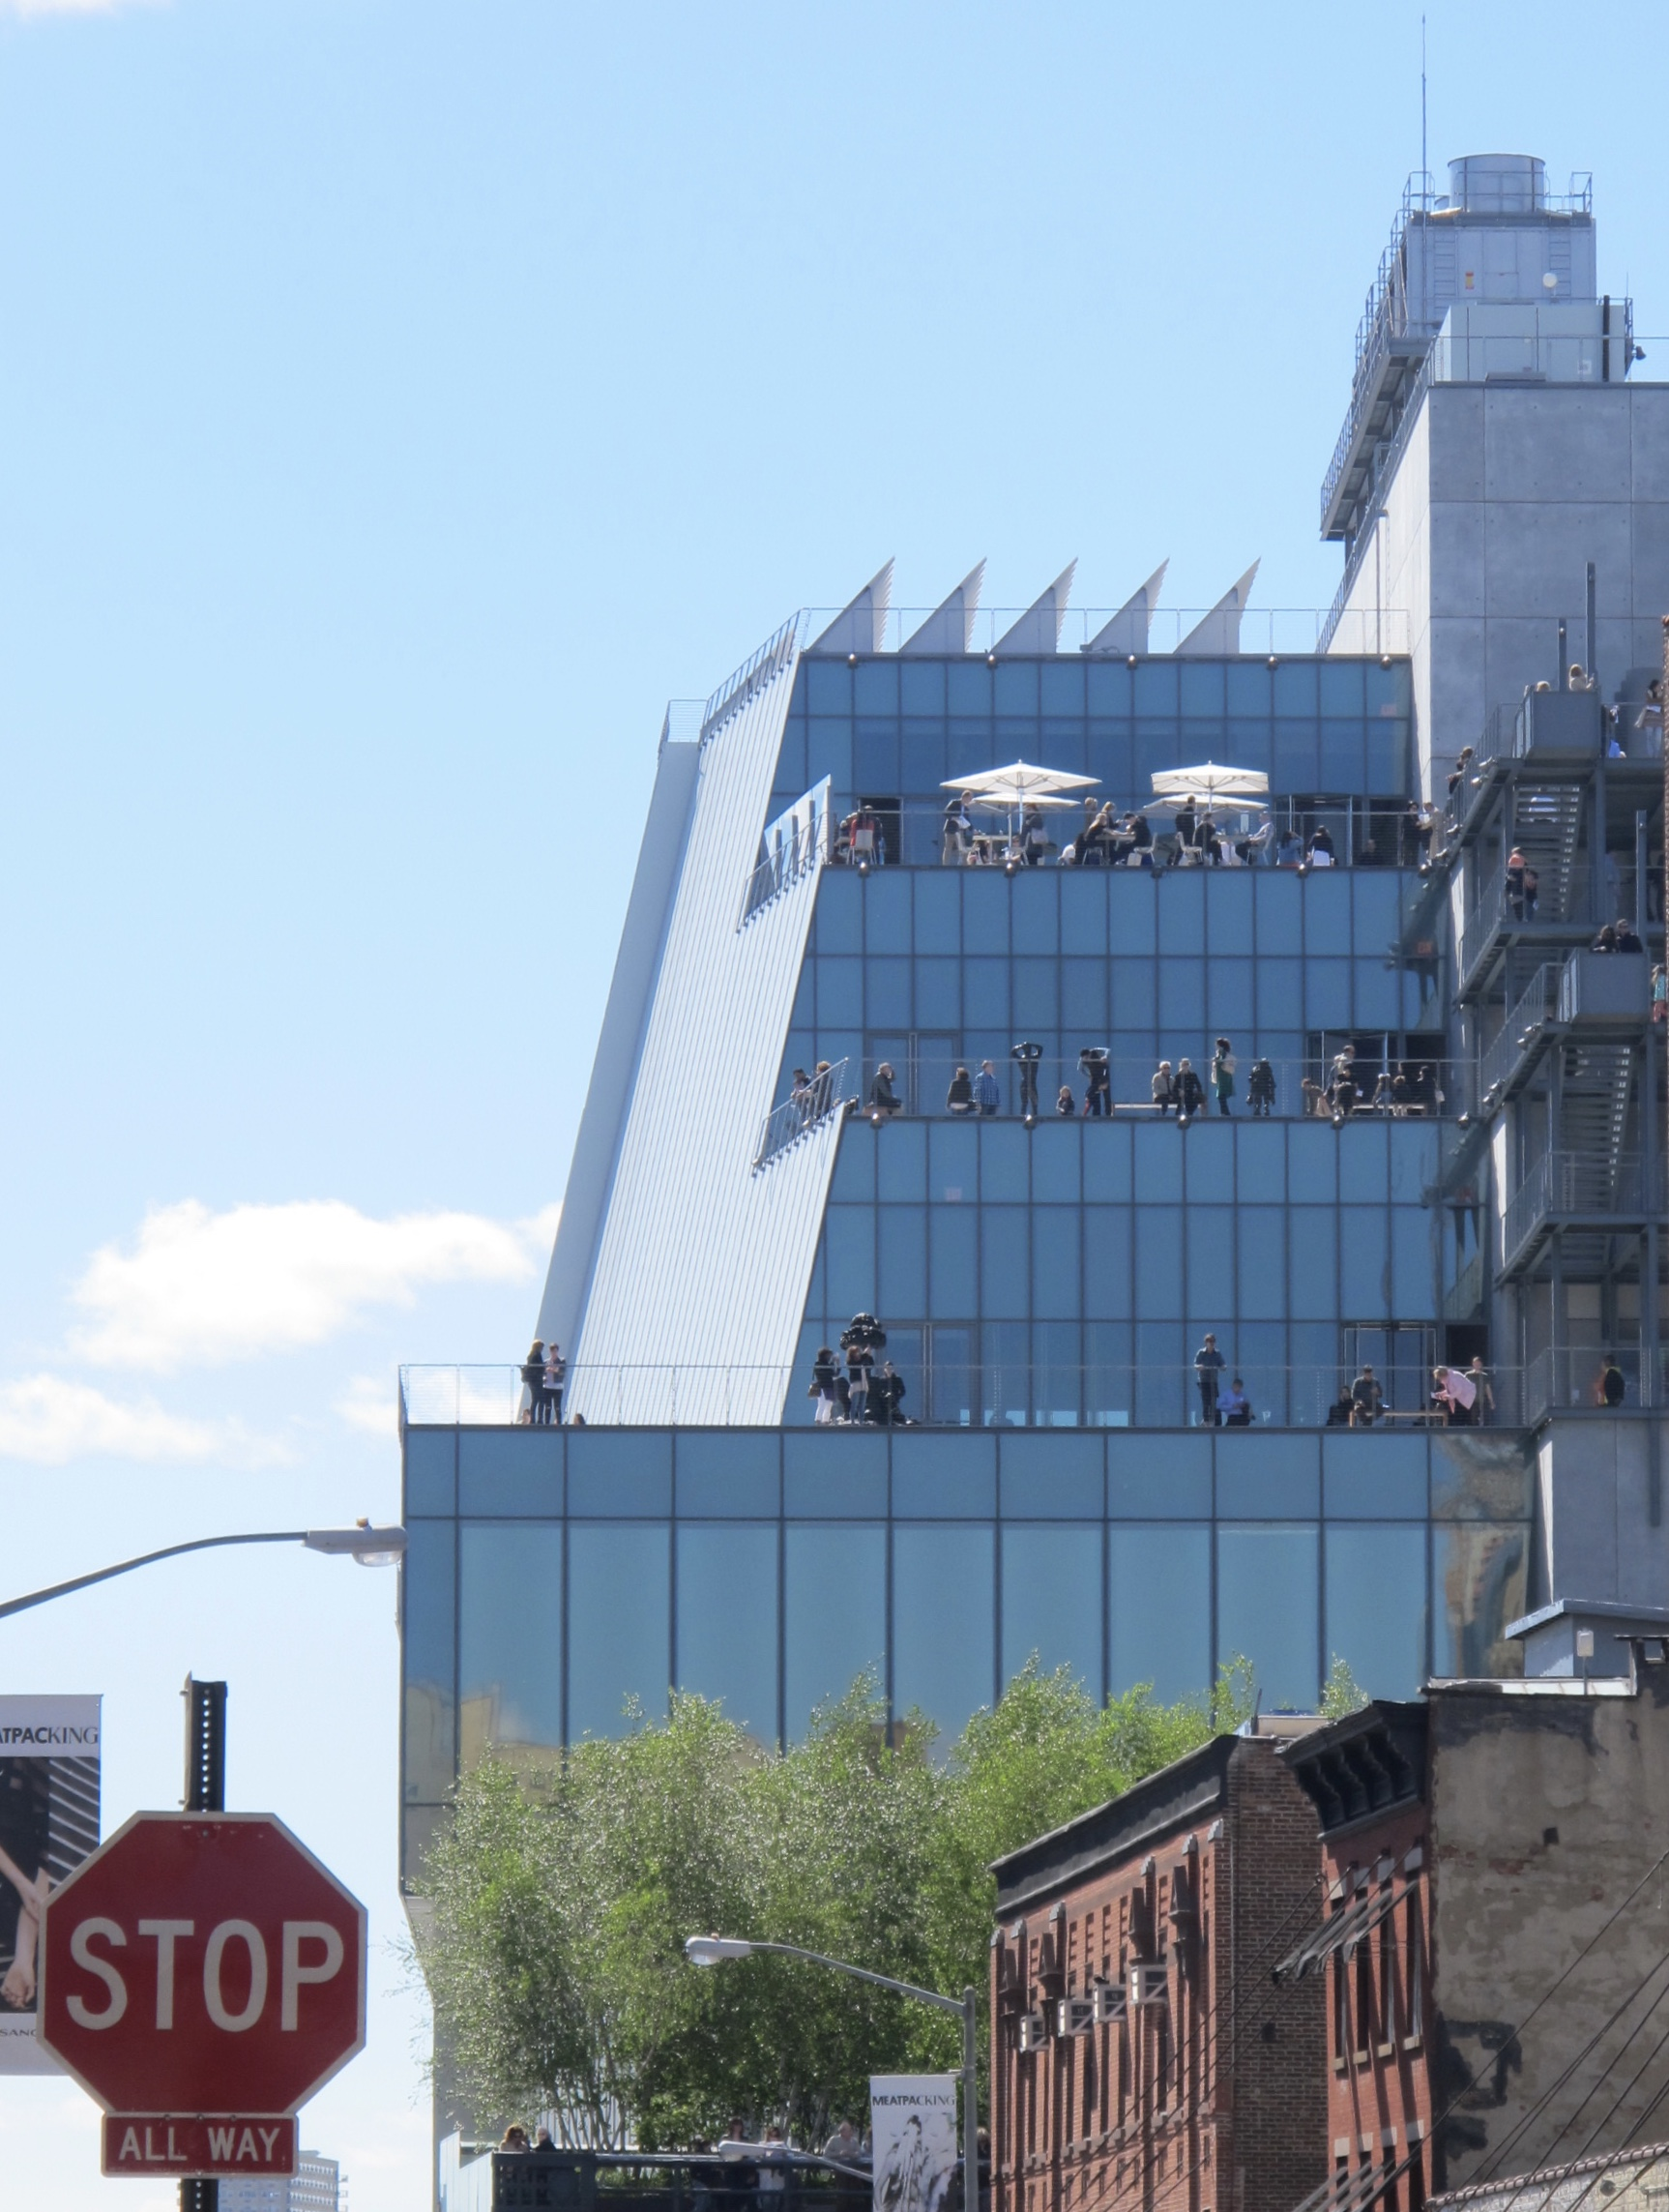 A view of the museum from Gansevoort Street. You can see the Terraces on the back of the building.